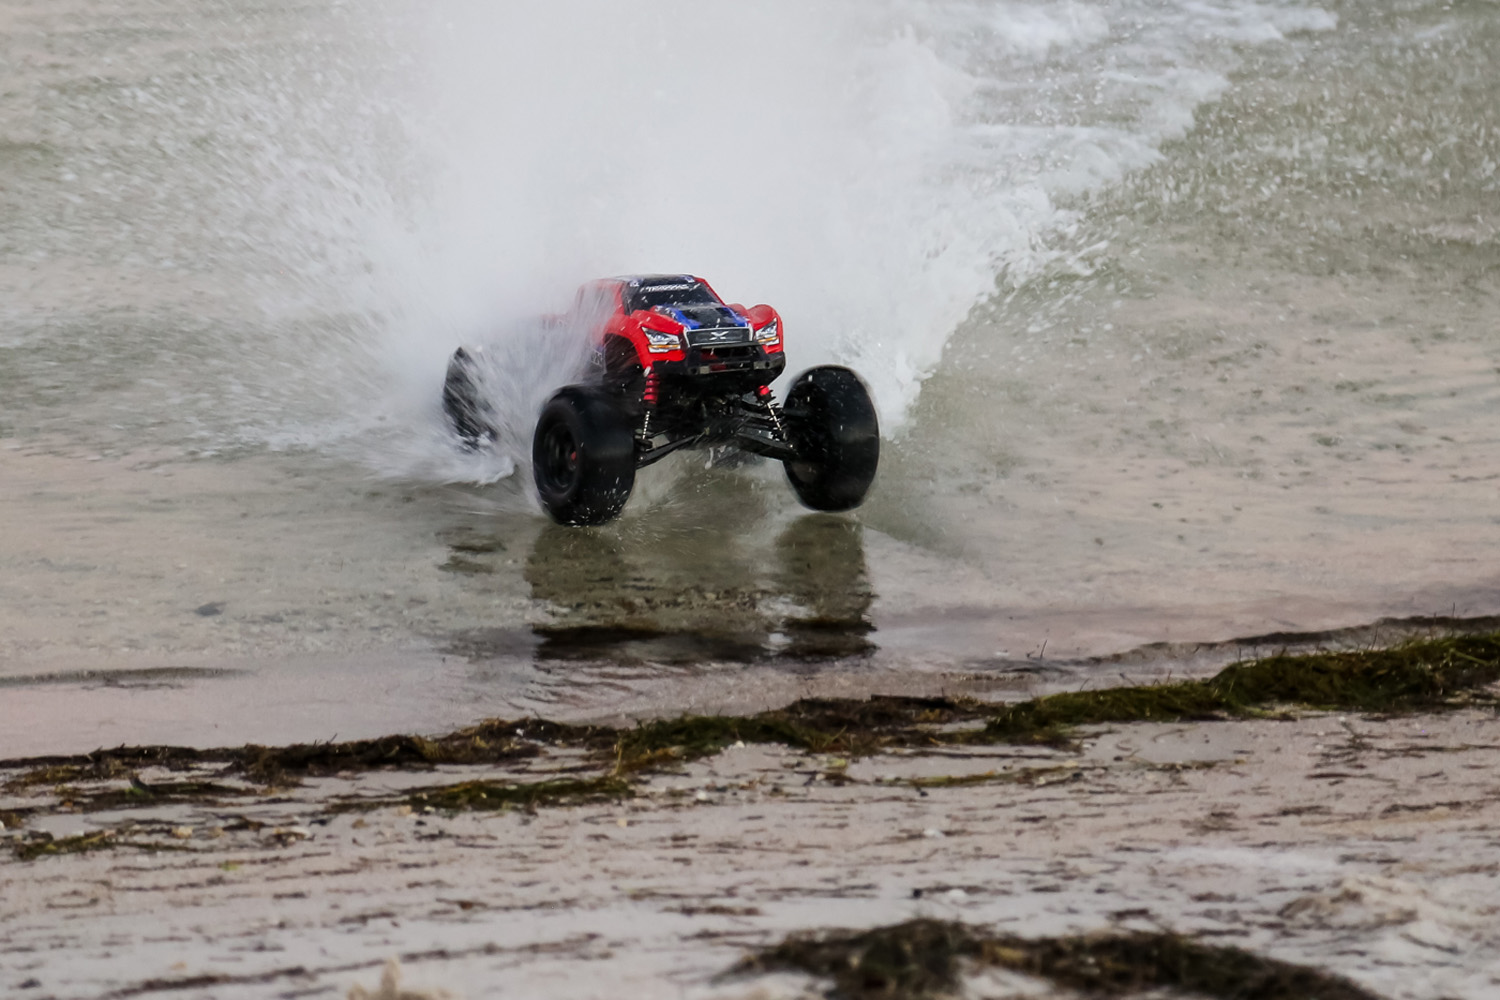 X-Maxx defies physics on the water